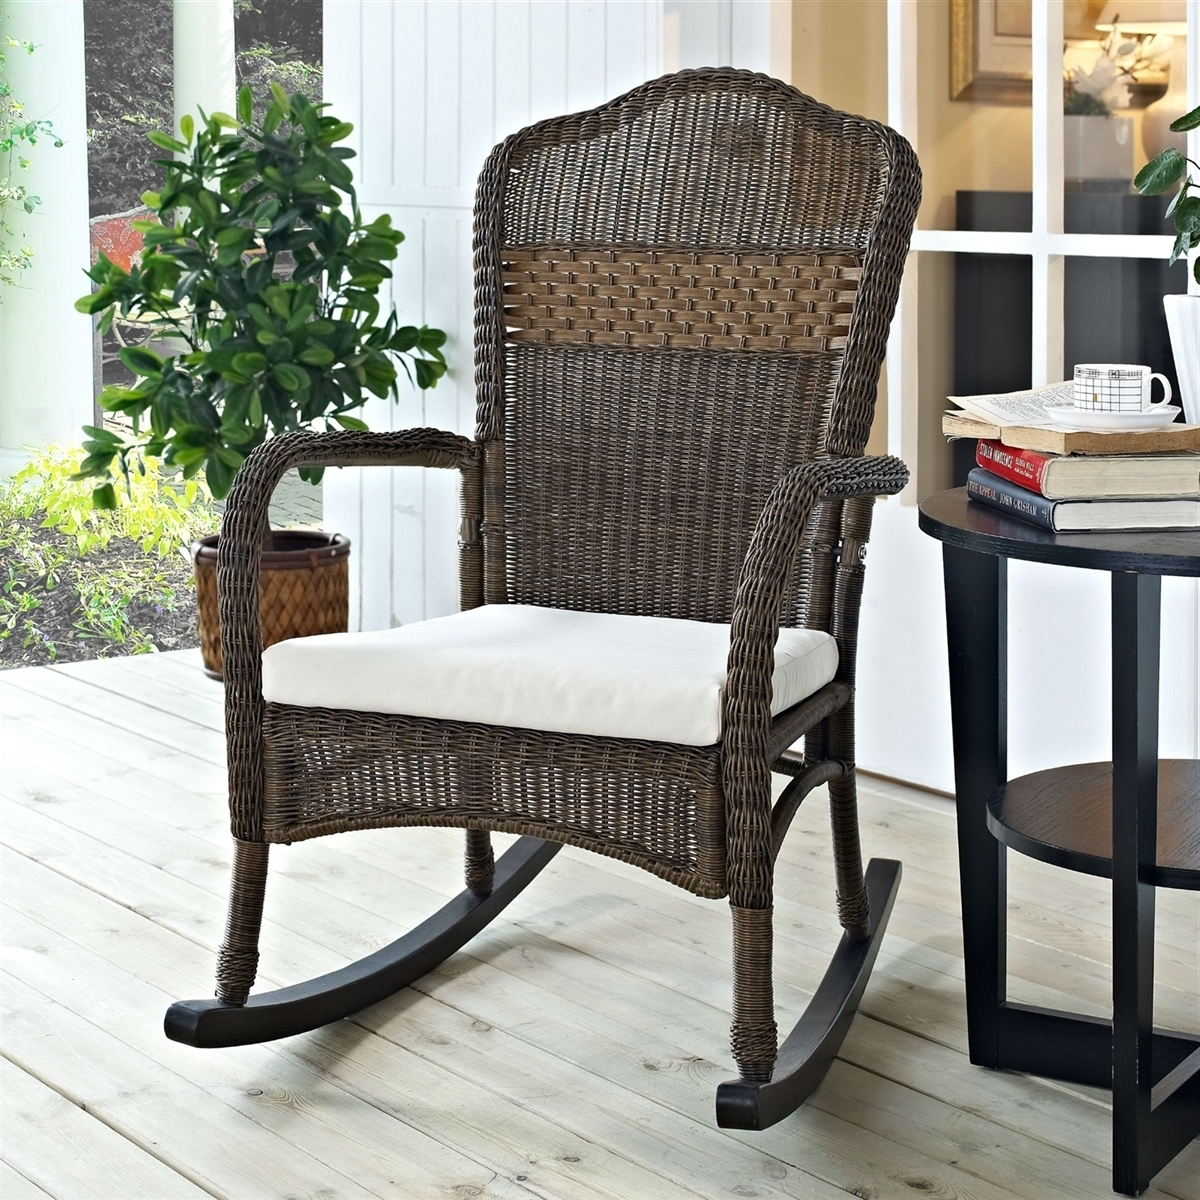 Outdoor Rattan Rockers Resin Rockers Sale Indoor Wicker (View 7 of 15)